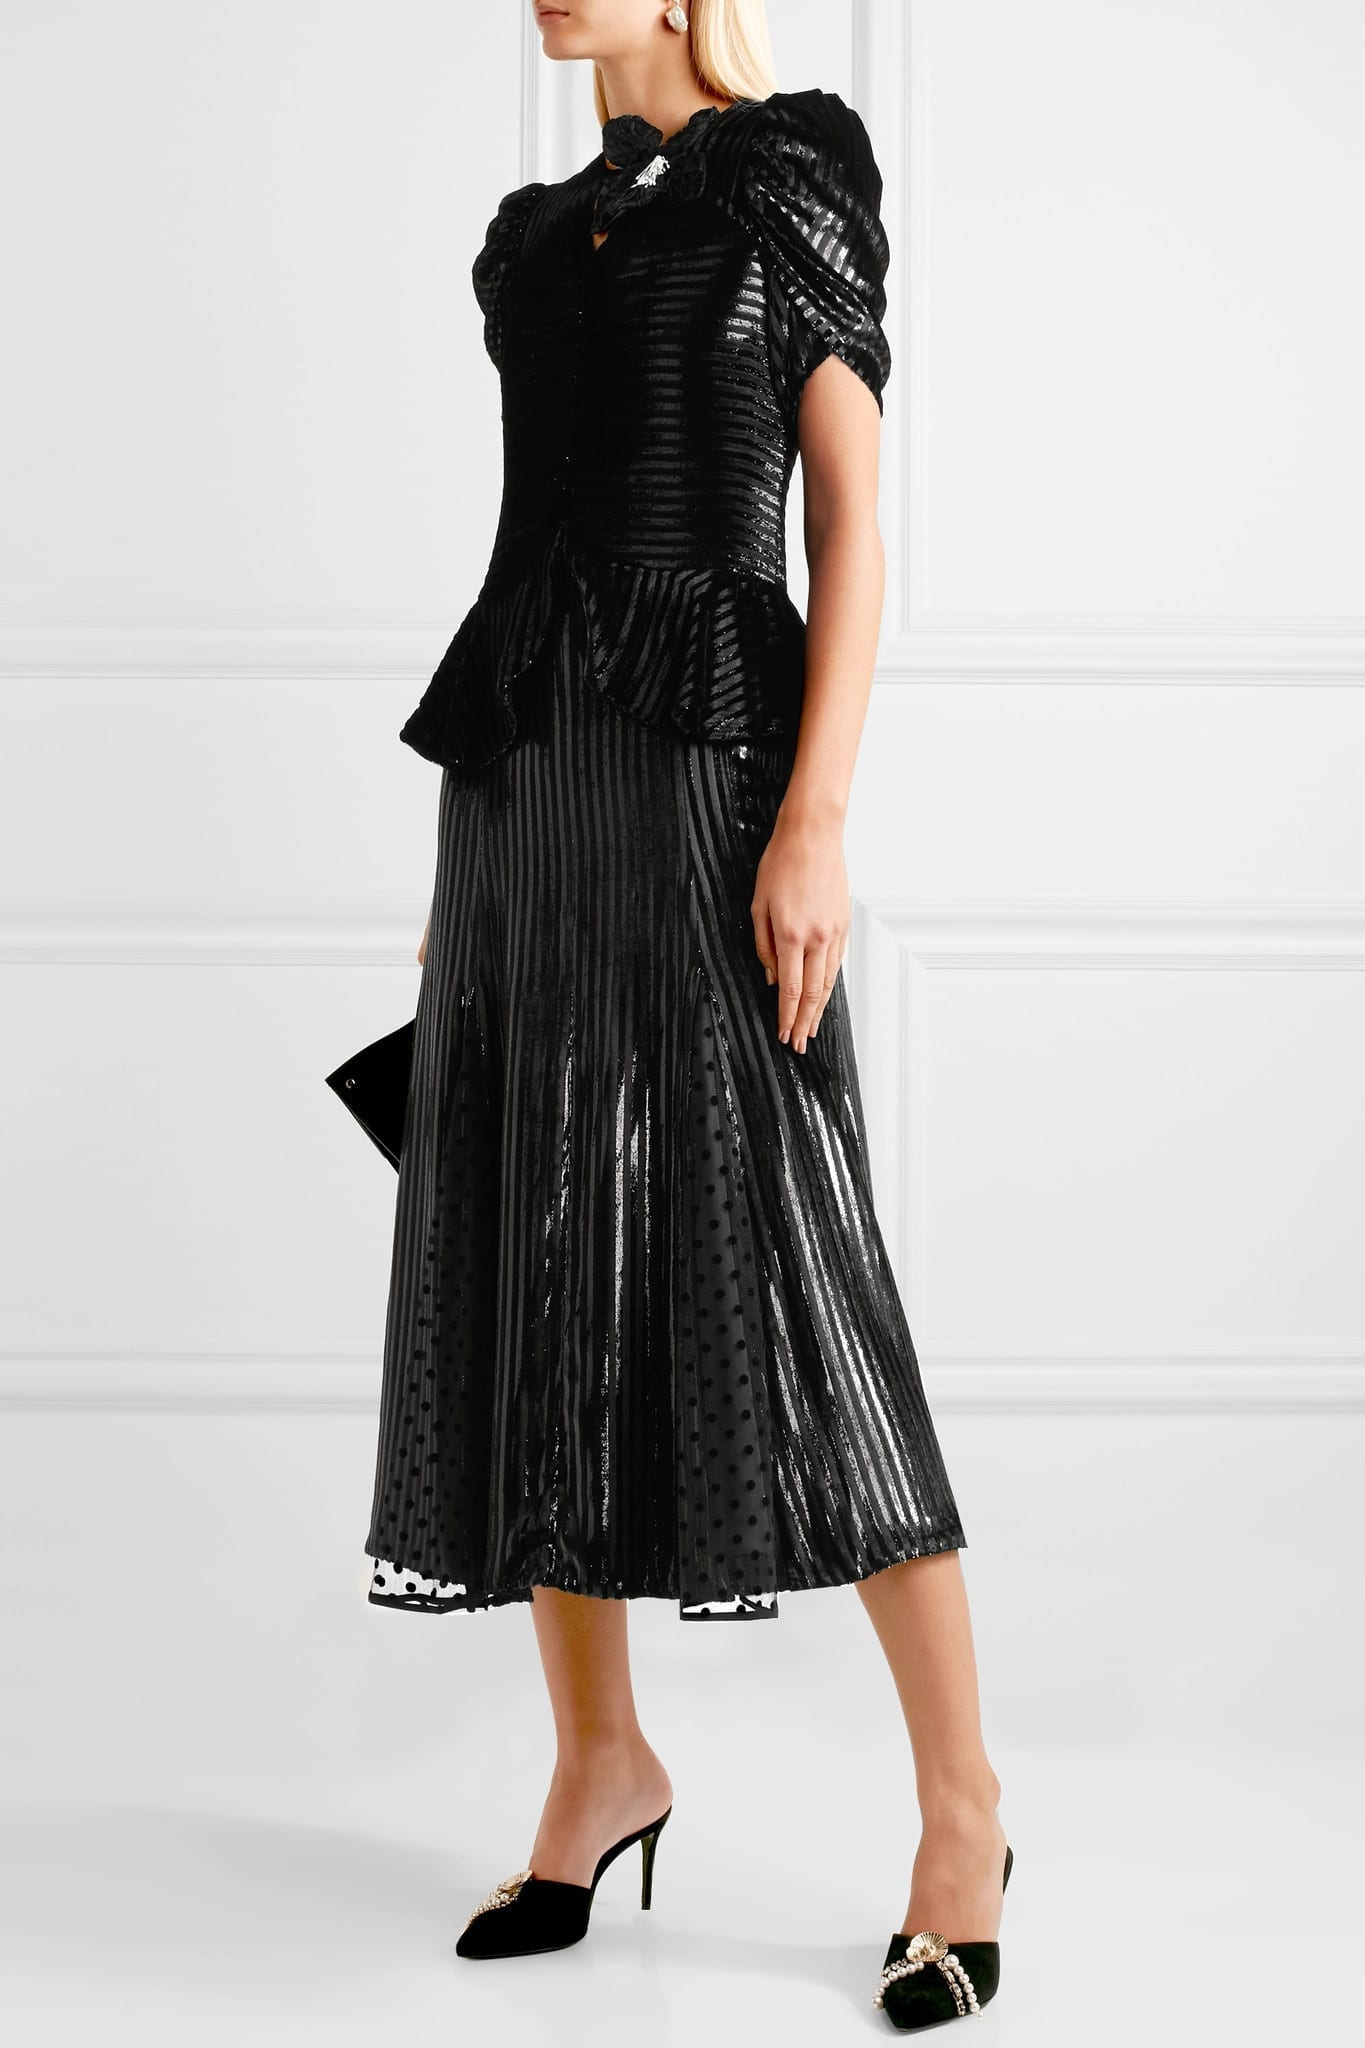 ERDEM Diantha Striped Metallic Velvet And Flocked Tulle Midi Black Dress